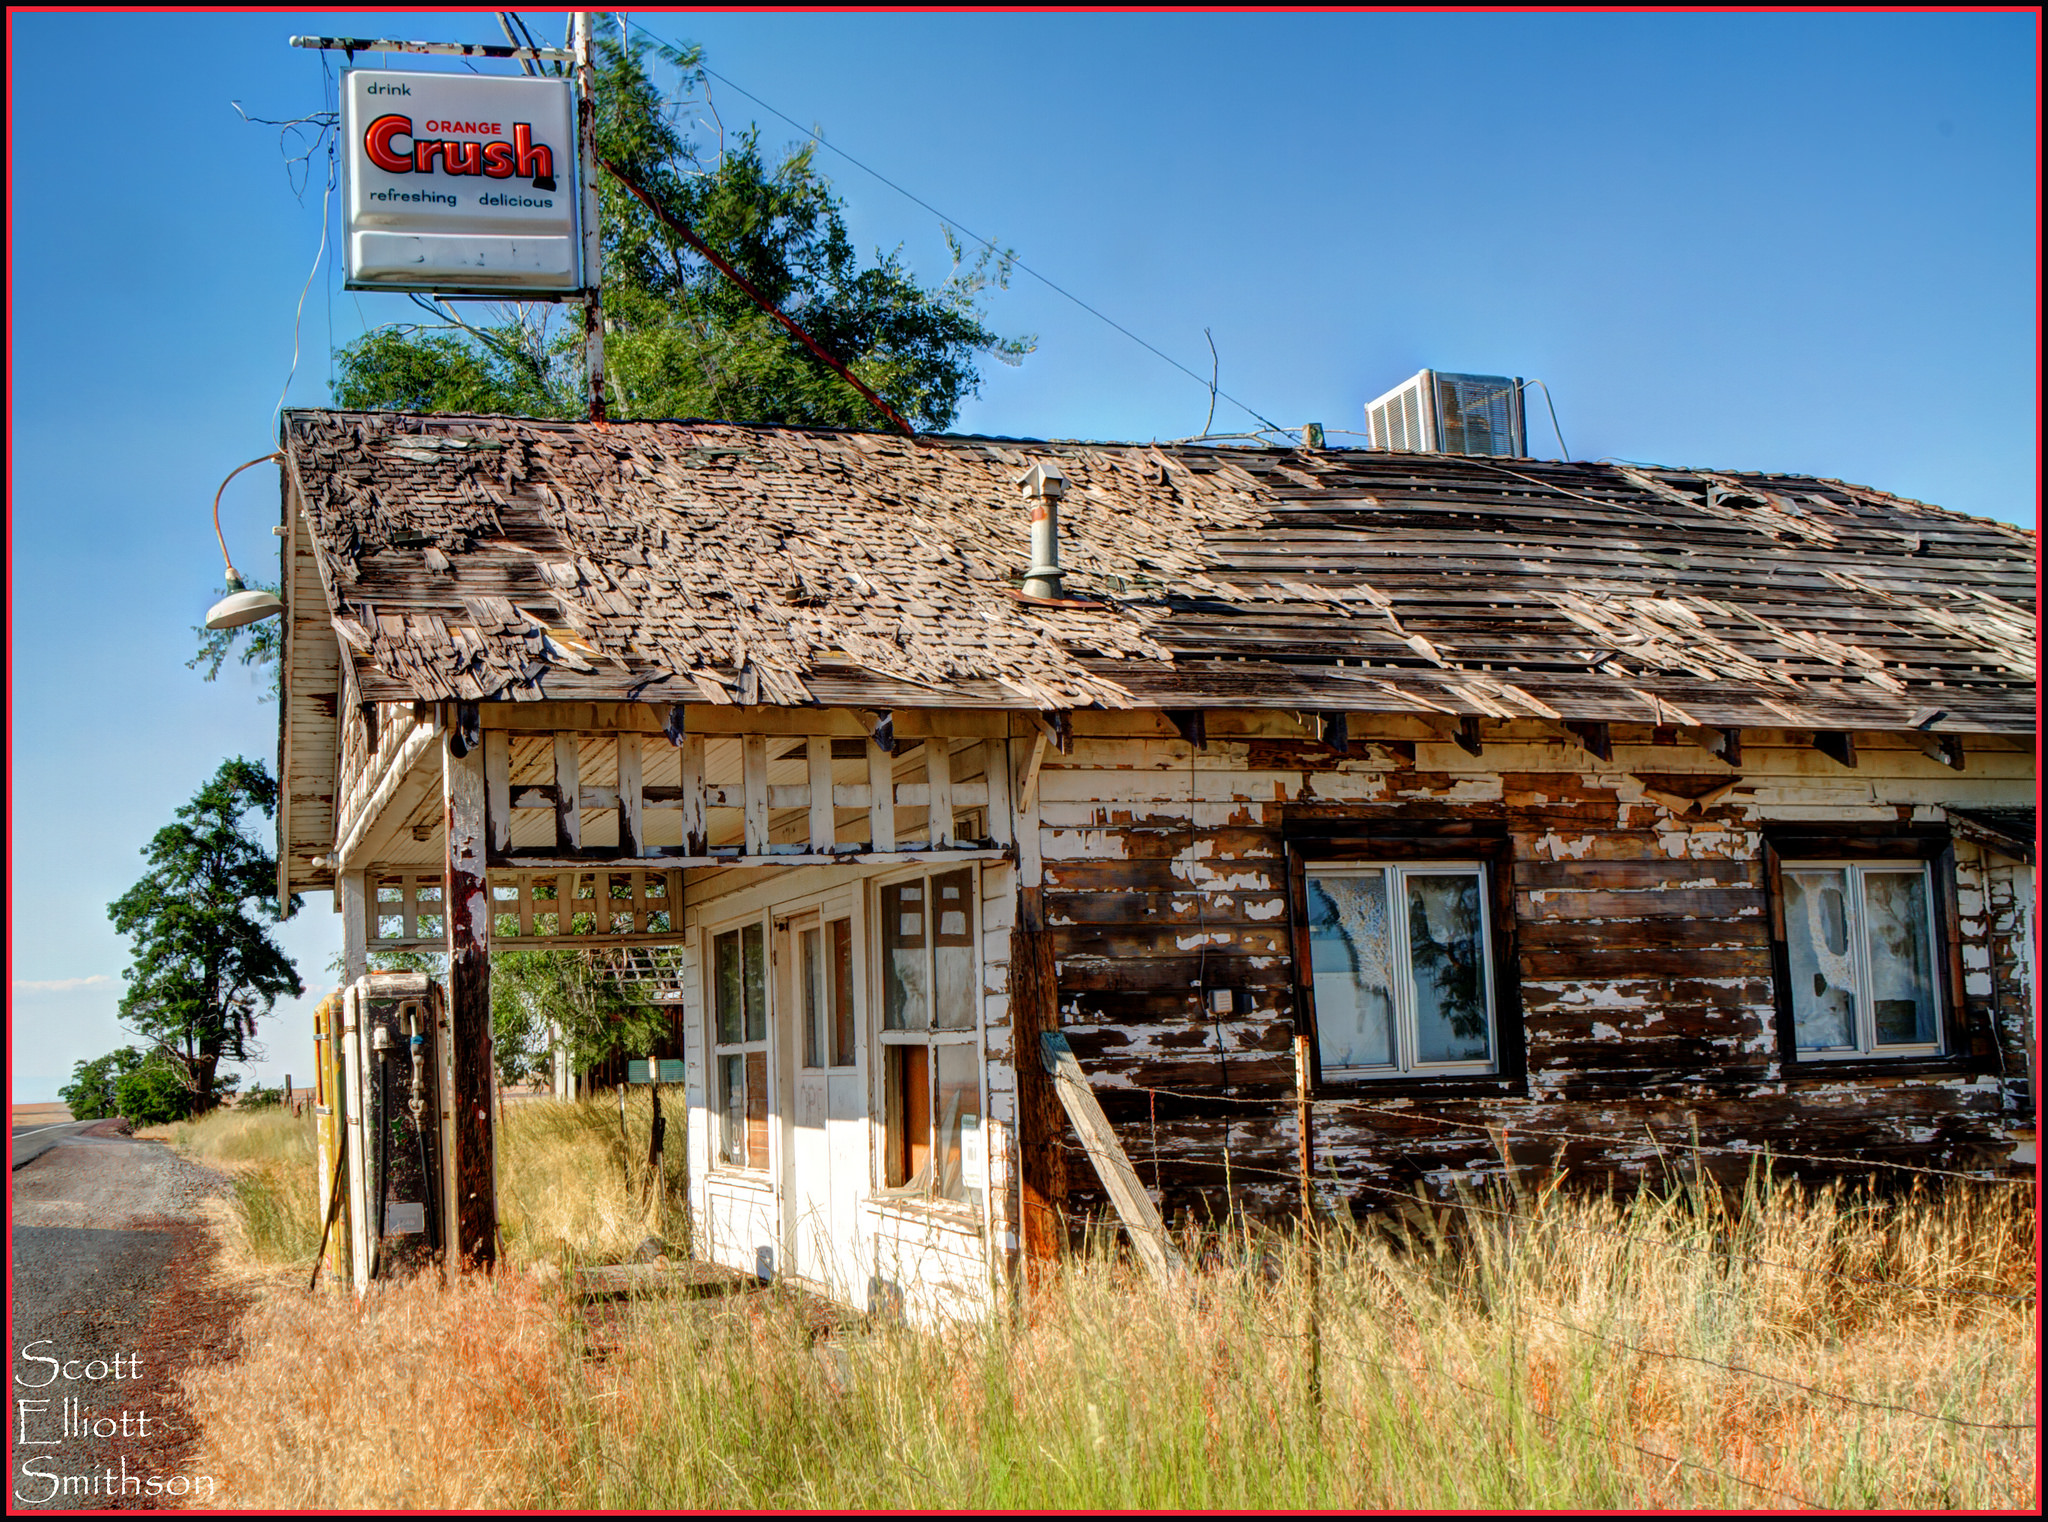 25 abandoned places in oregon that are downright awesome that